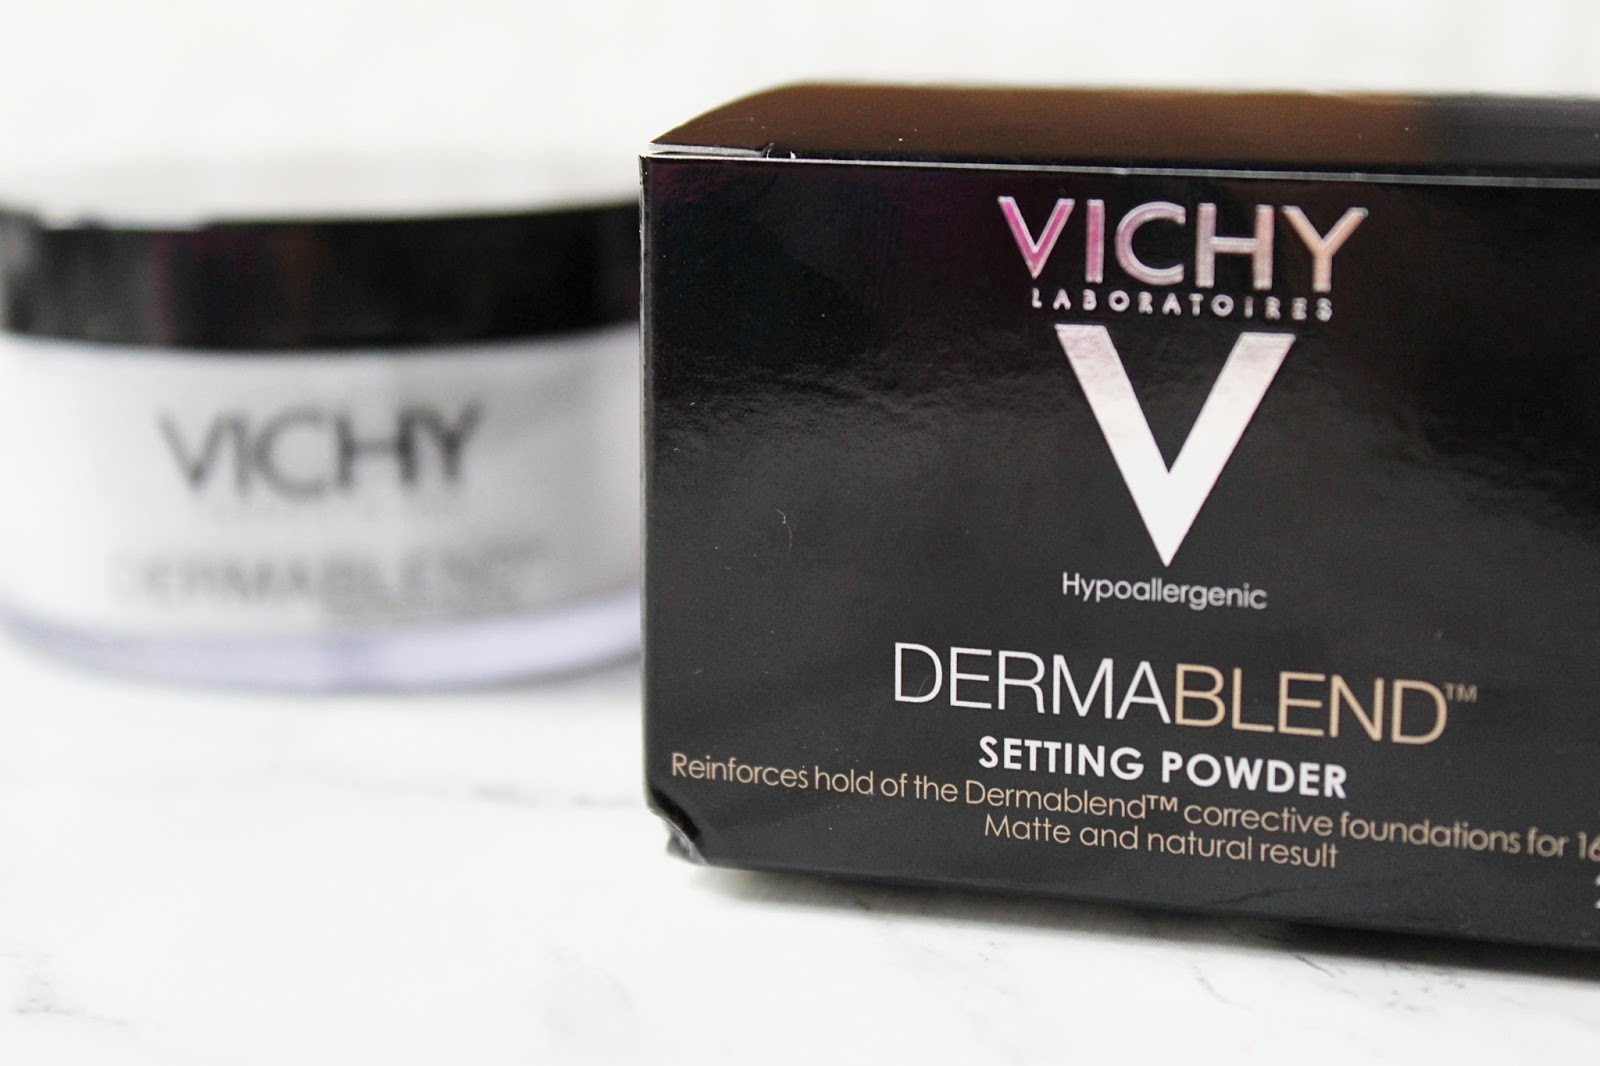 Vichy Dermablend Favourites